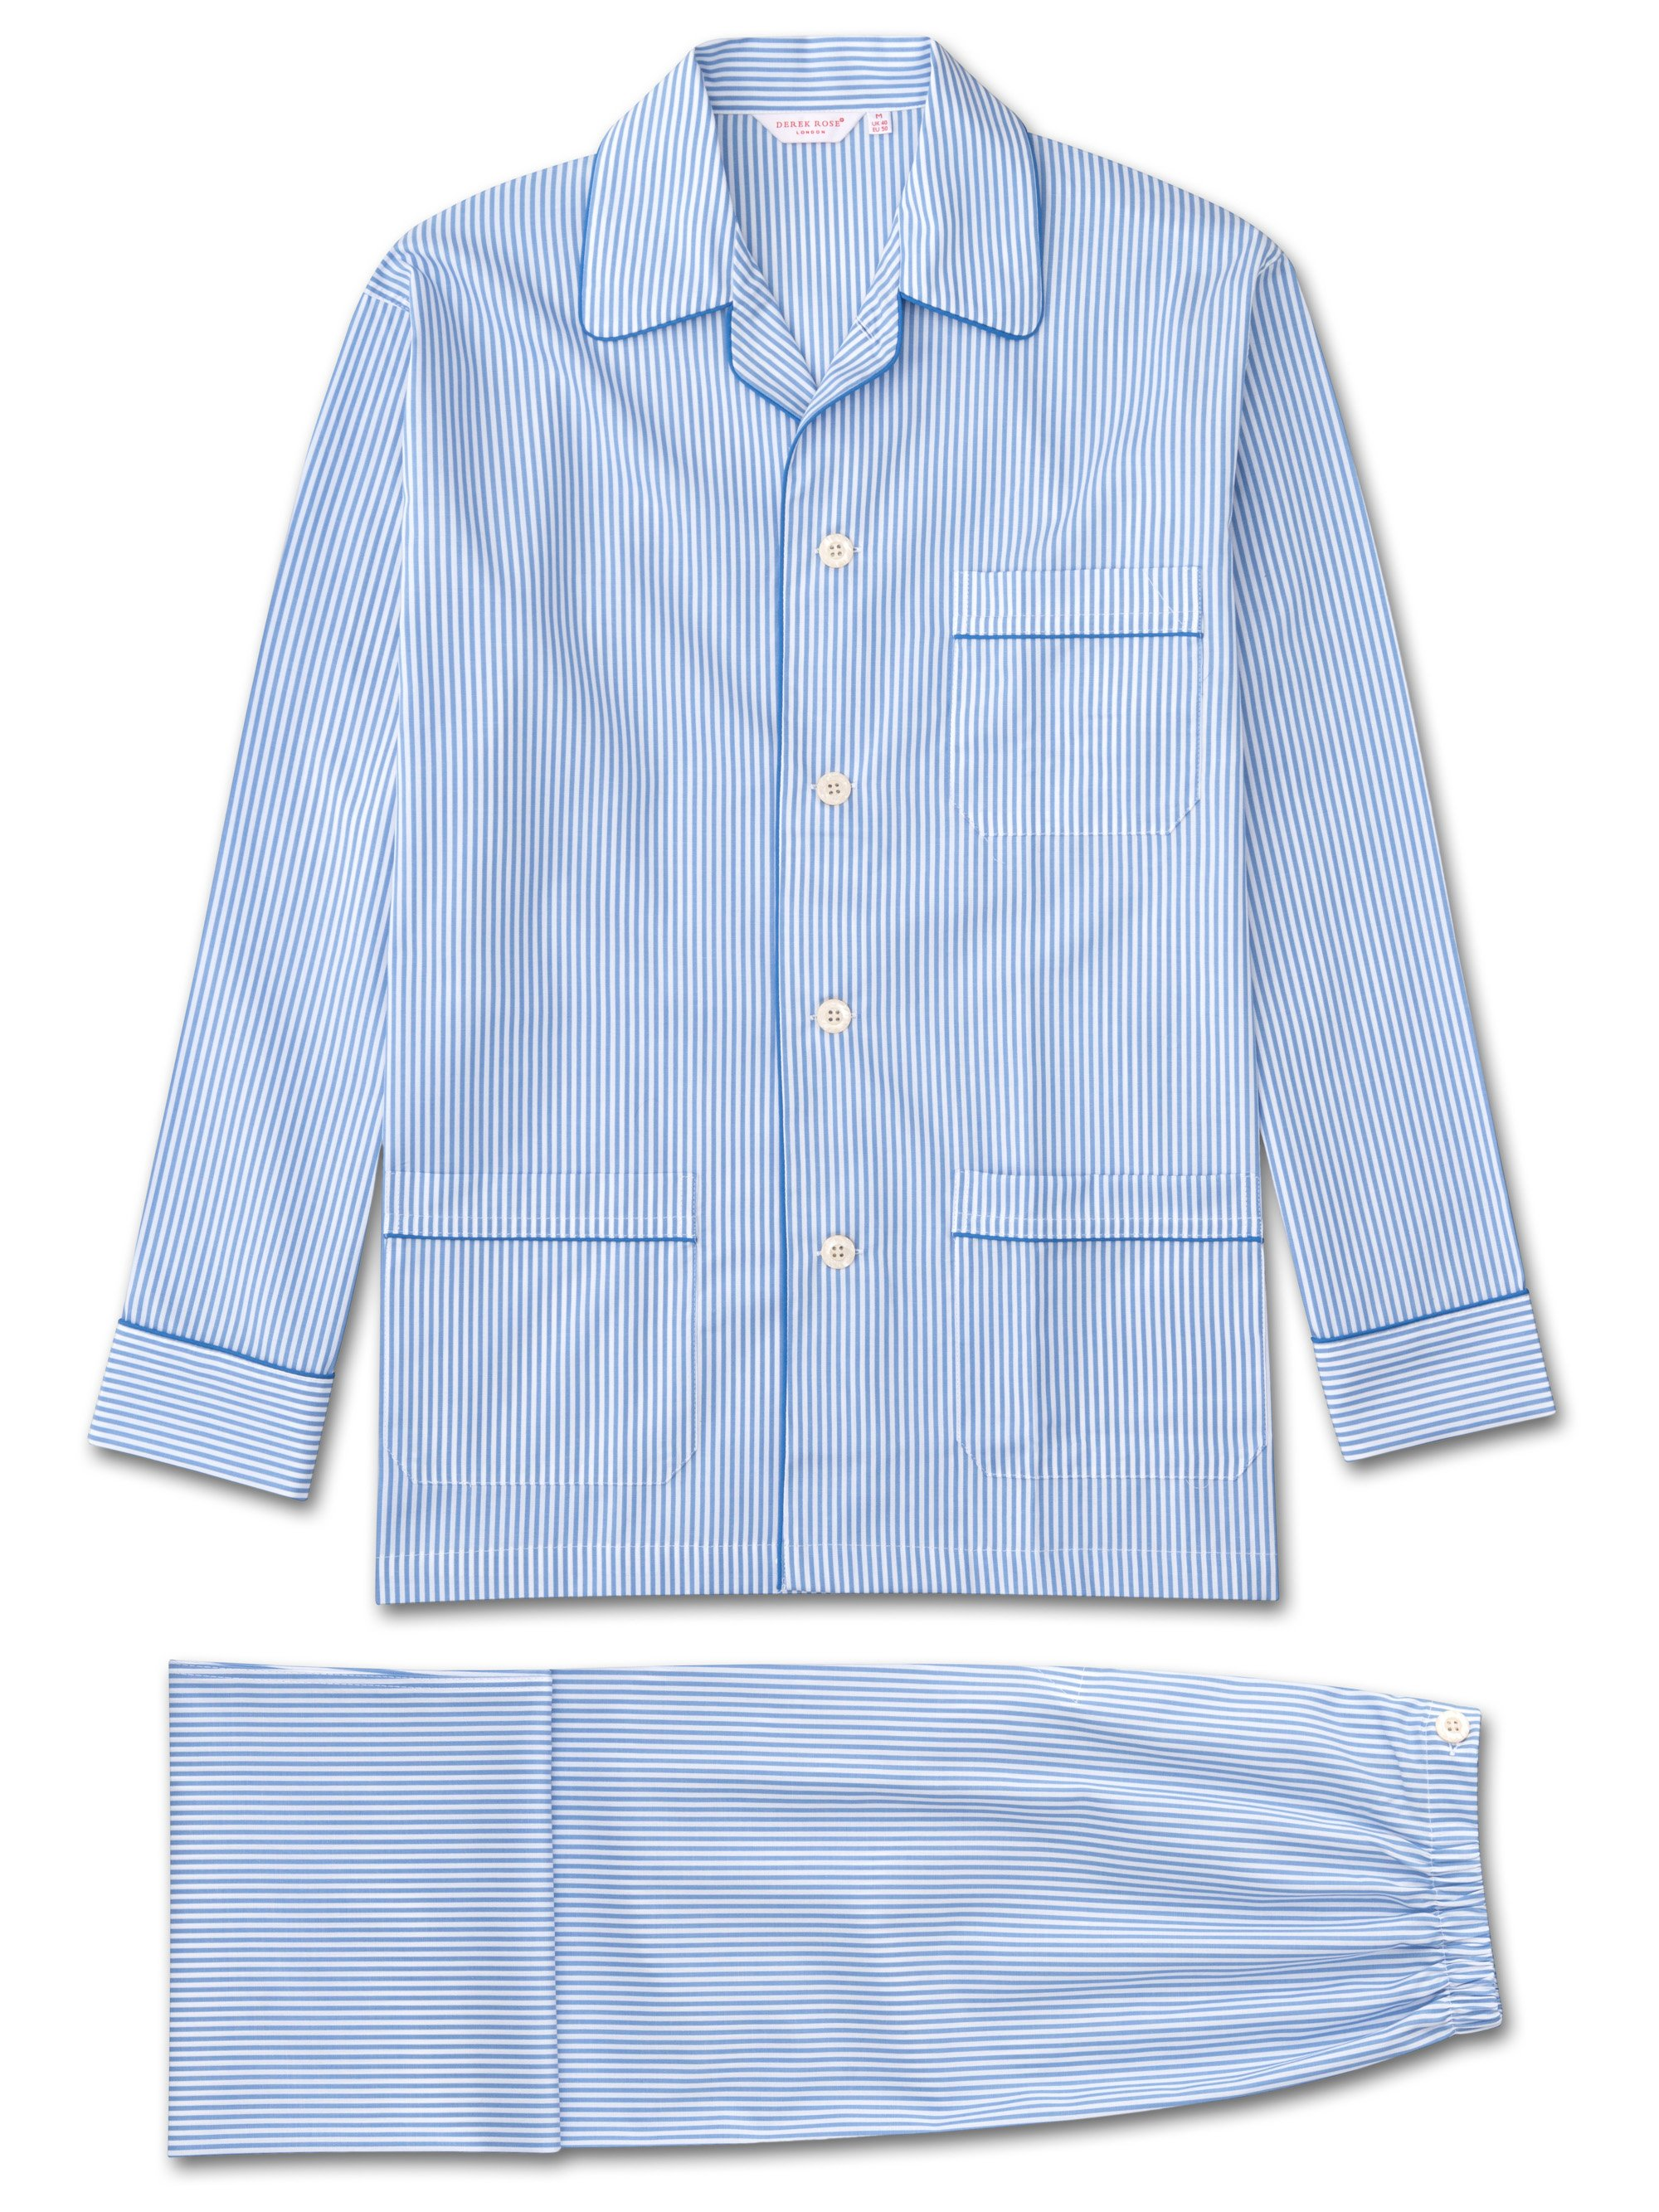 blue/white striped cotton men's pyjama